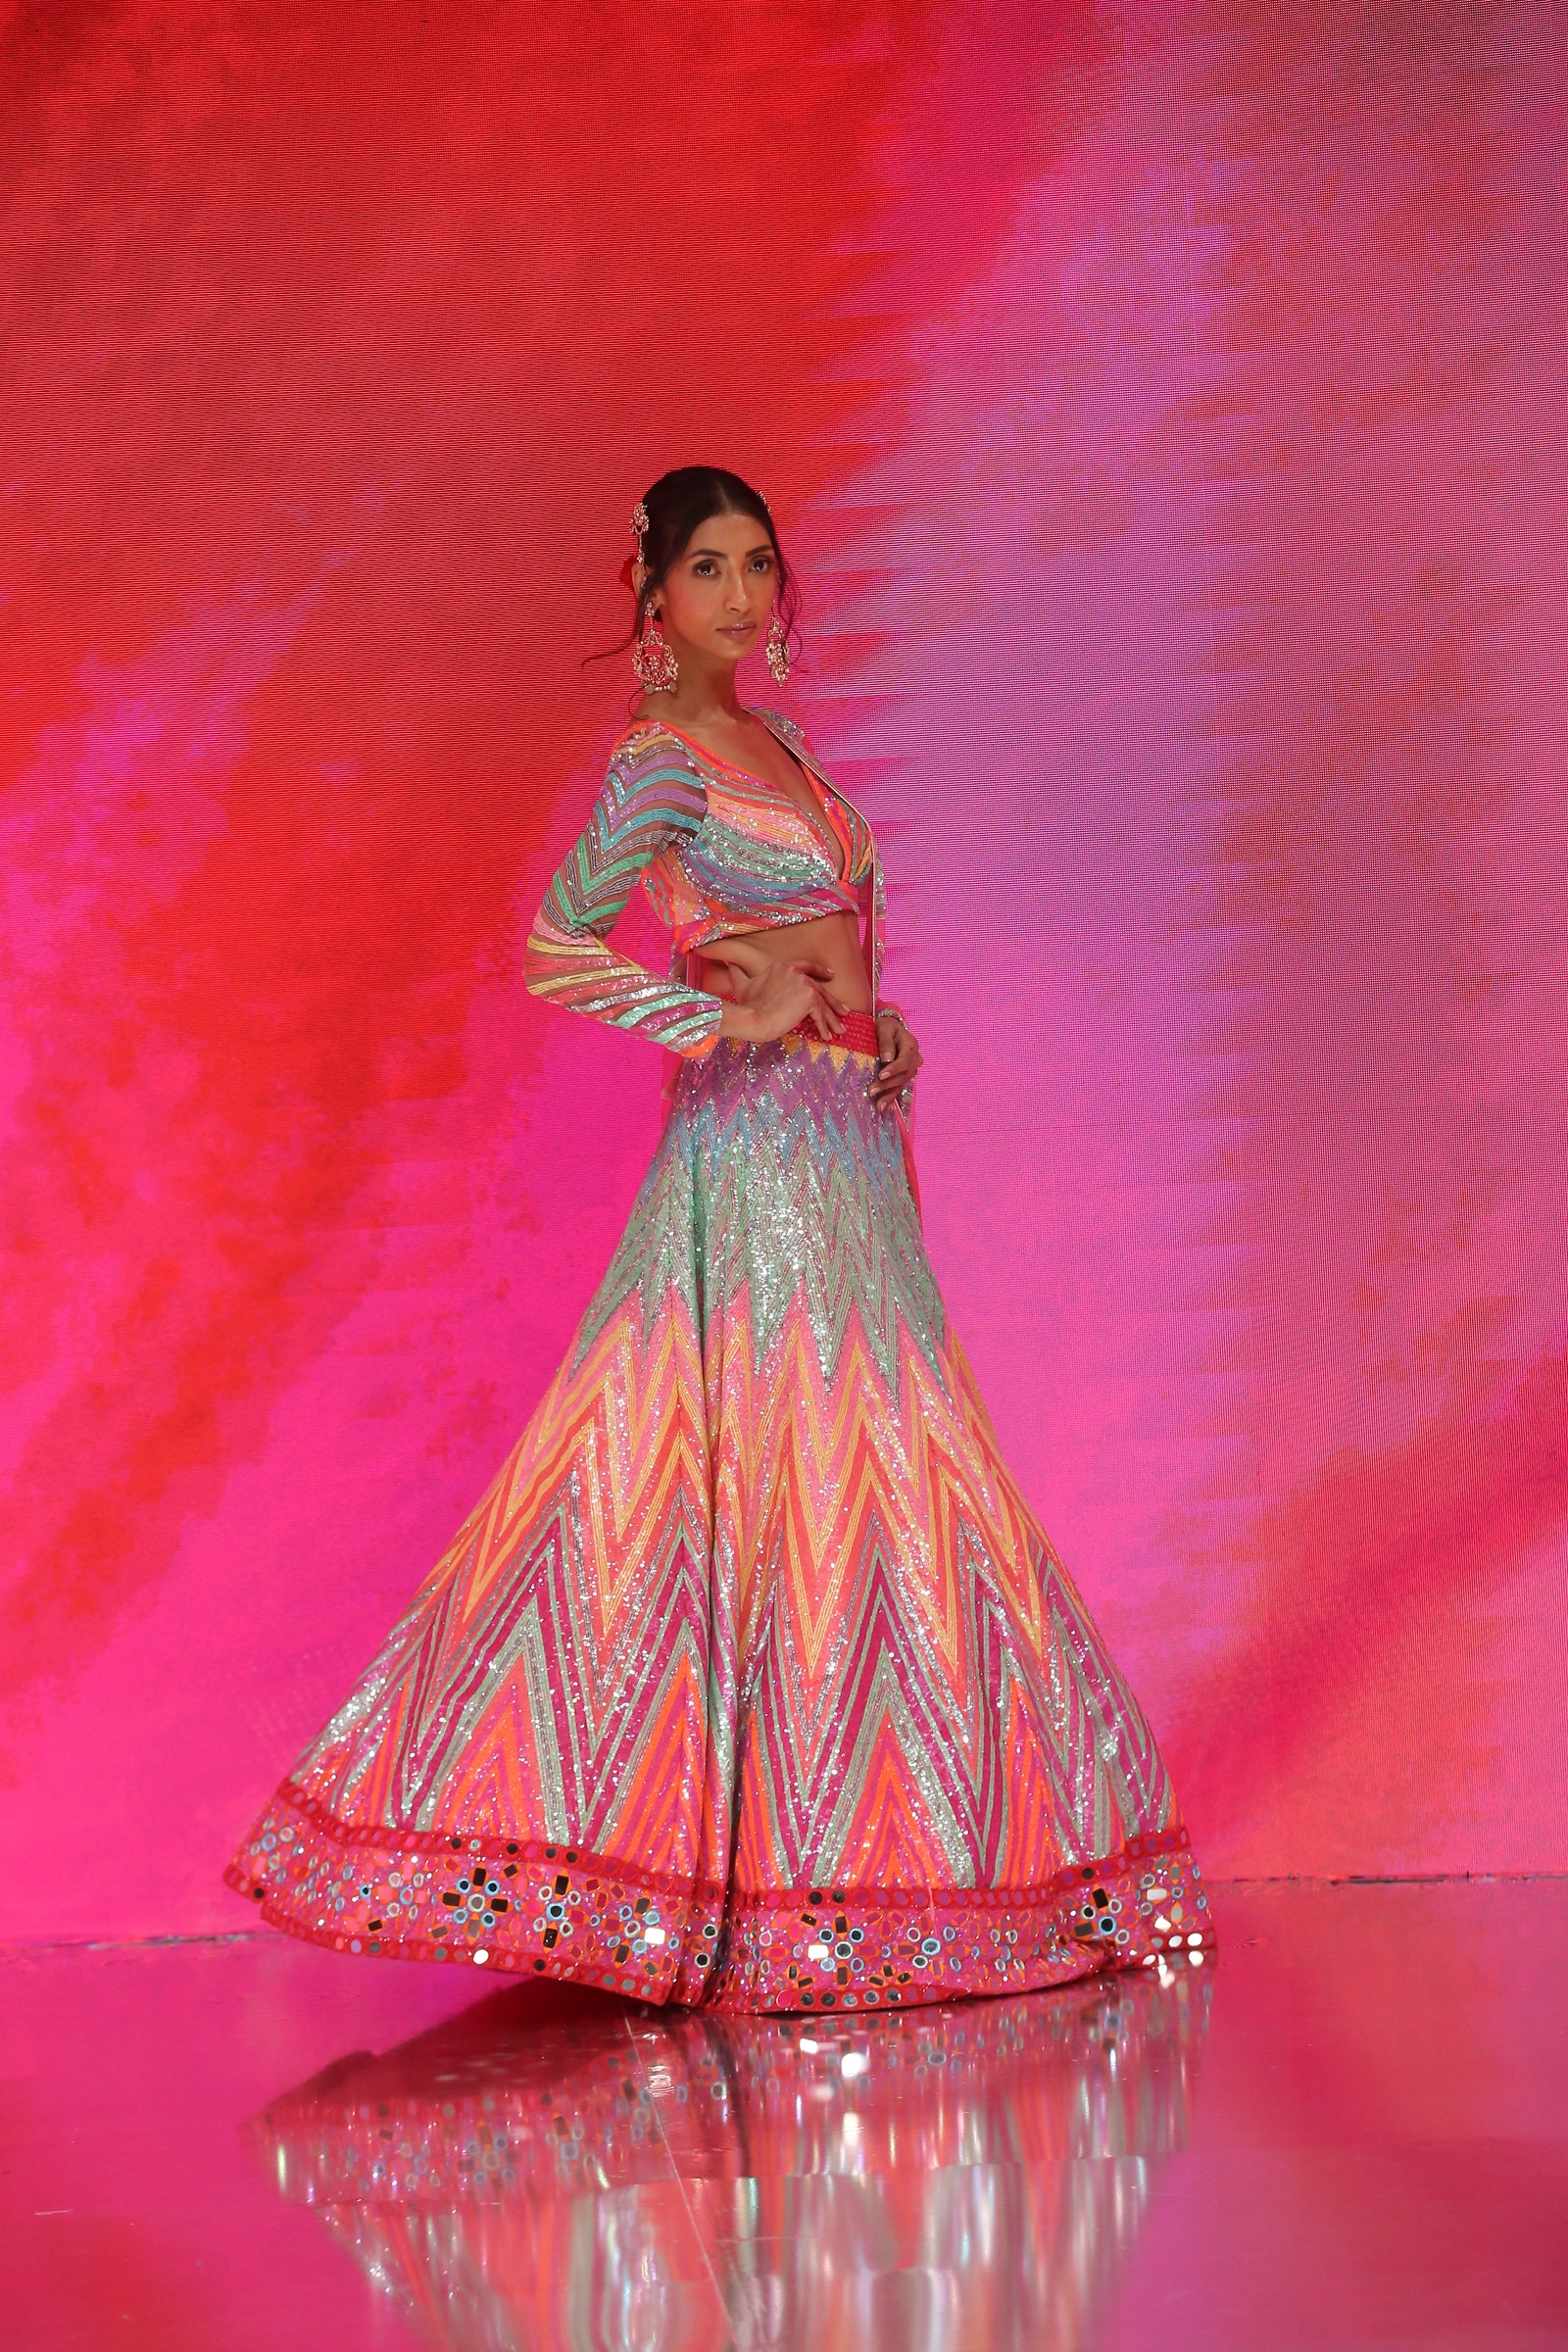 A lady wearing a striped, multi-colored lehenga that's covered in sequins and mirror work.